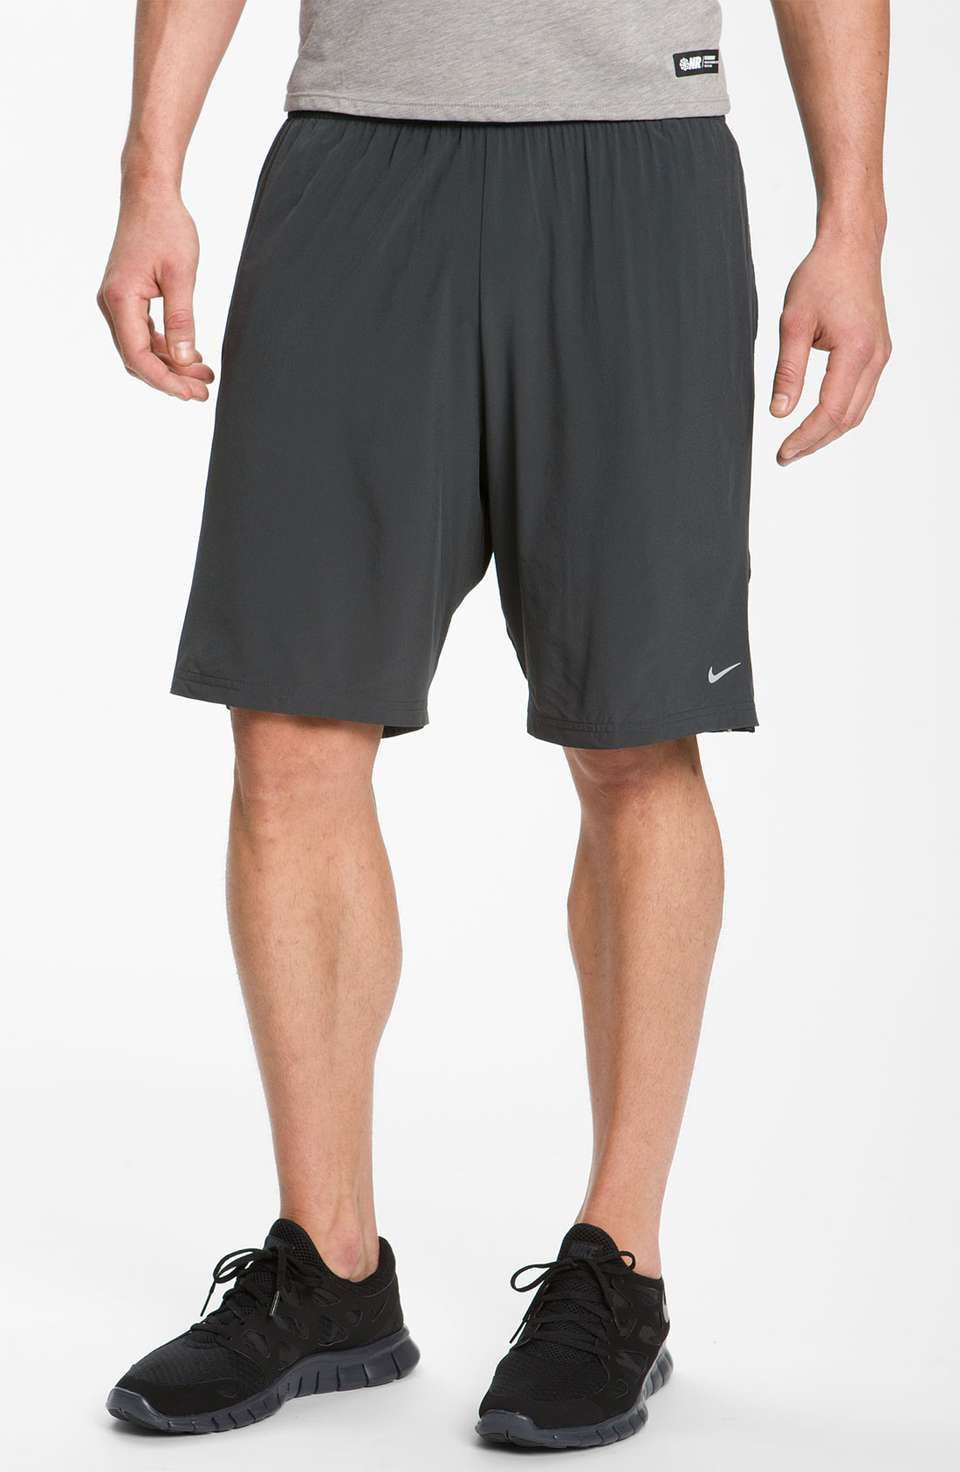 Nike Dri Fit Woven Running Shorts Online Only Mens